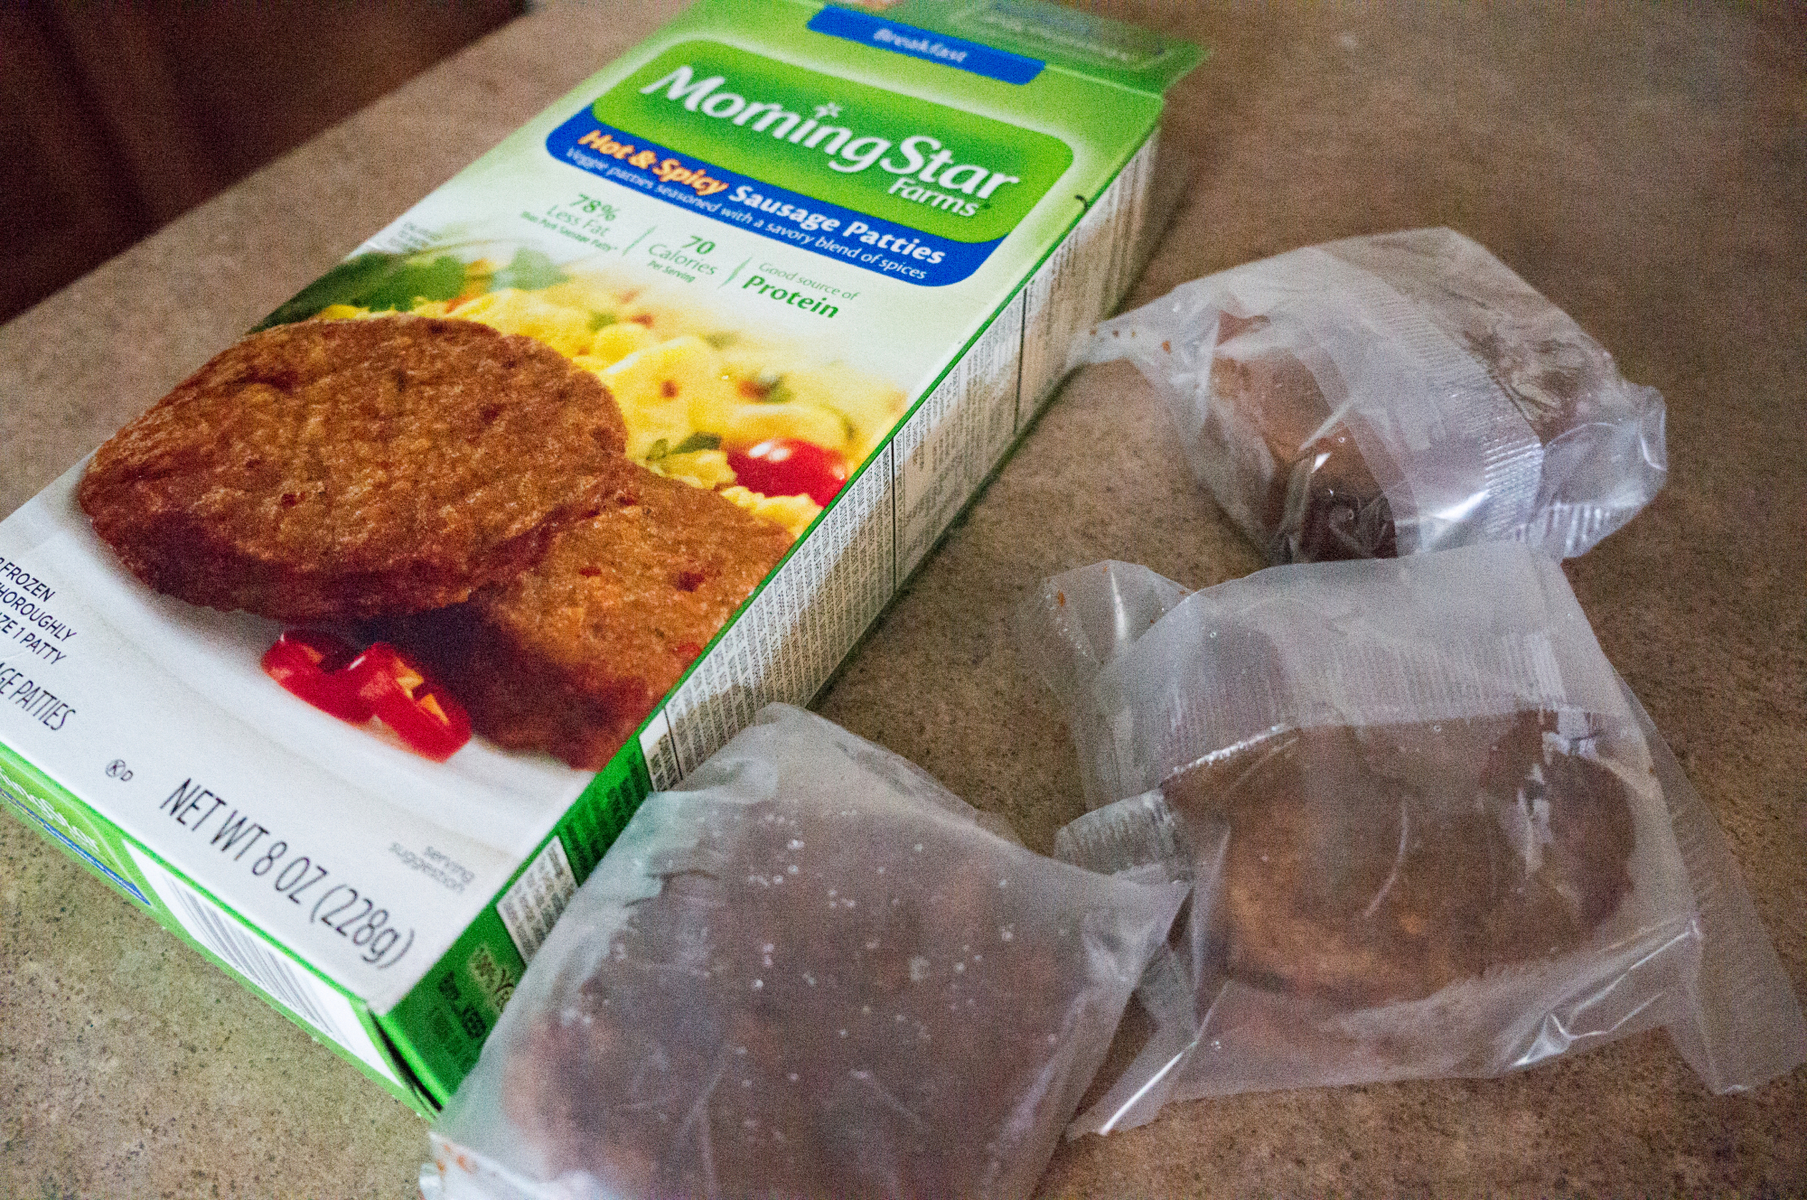 Kellogs: Bring back Morningstar Farms Sausage Veggie Crumbles We, the undersigned, hereby ask Kelloggs to bring back the Morningstar Farms Sausage Veggie Crumble product. We have been unable to find a suitable.